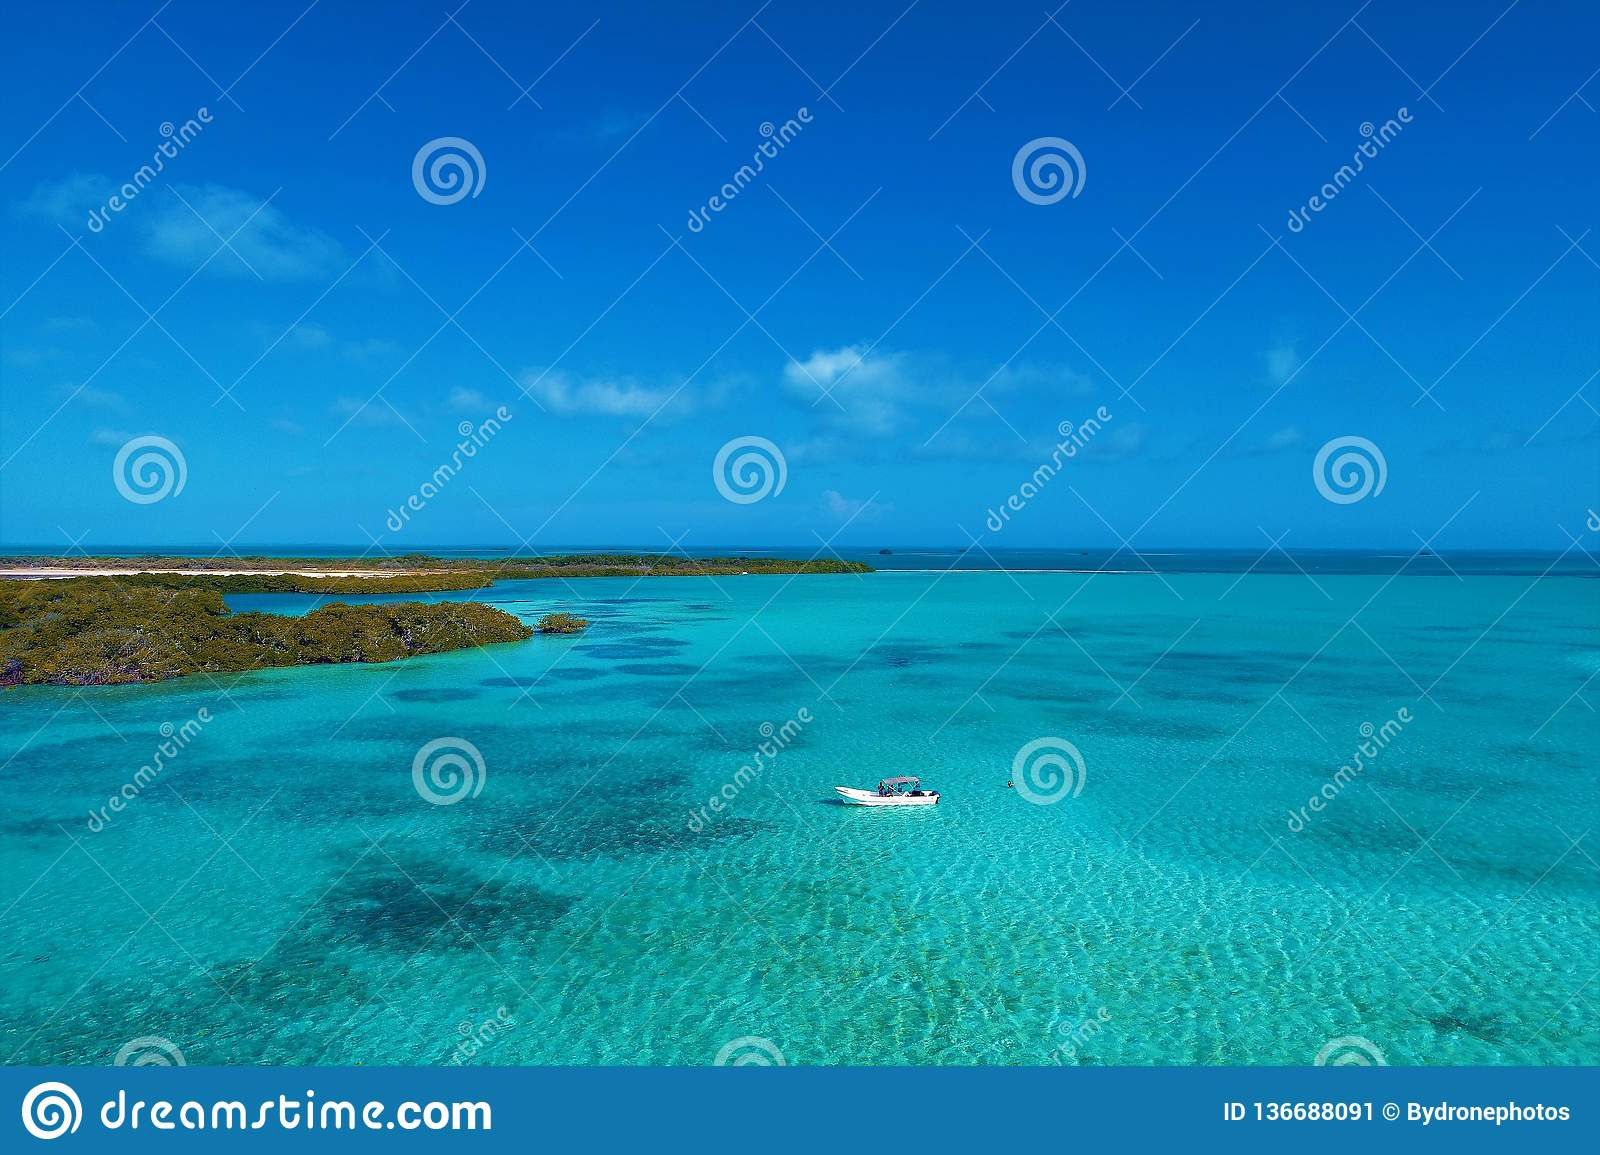 Los Roques, Caribbean sea. Fantastic landscape. Great beach scene.